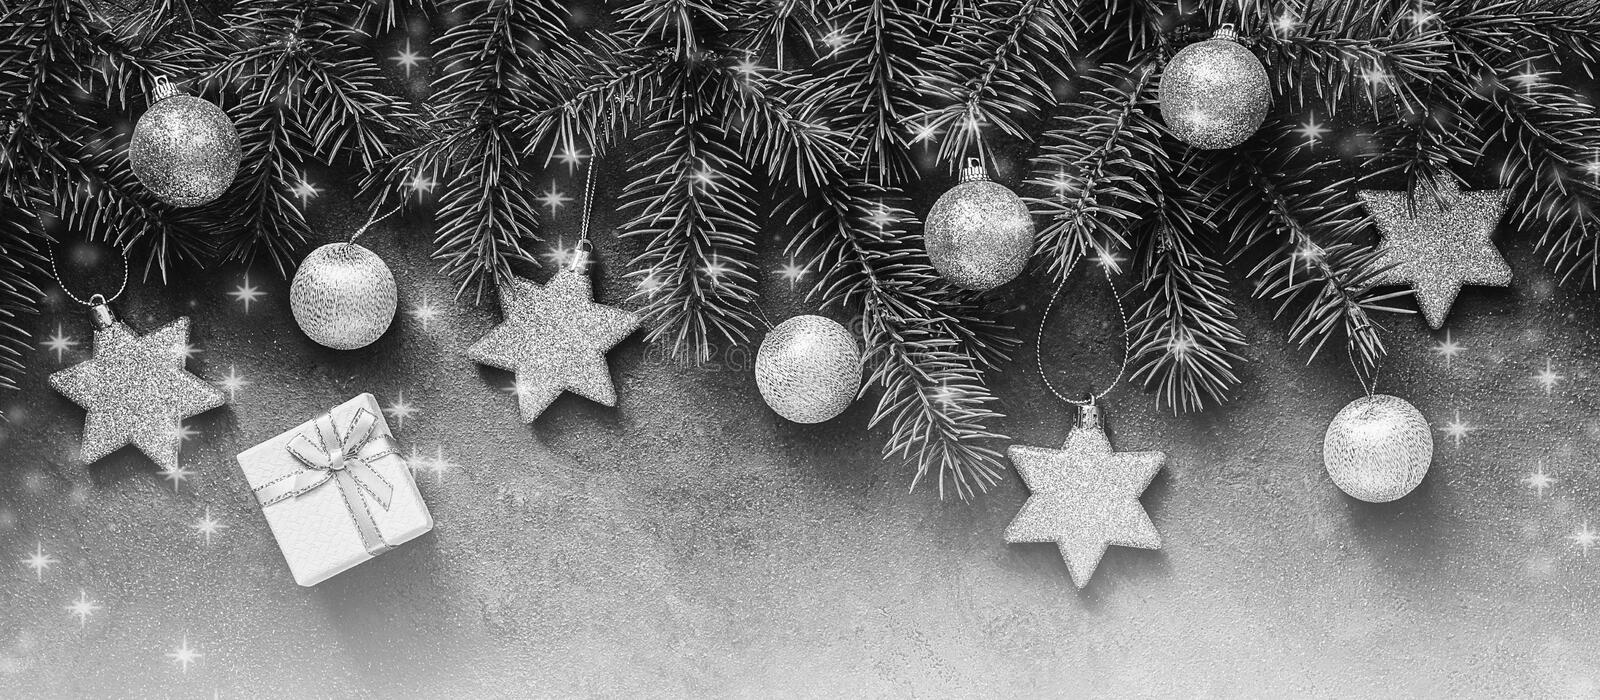 Christmas abstract border in black and white with a silver tone, fir branches decorated with balls and stars. Top view, flat lay royalty free stock images